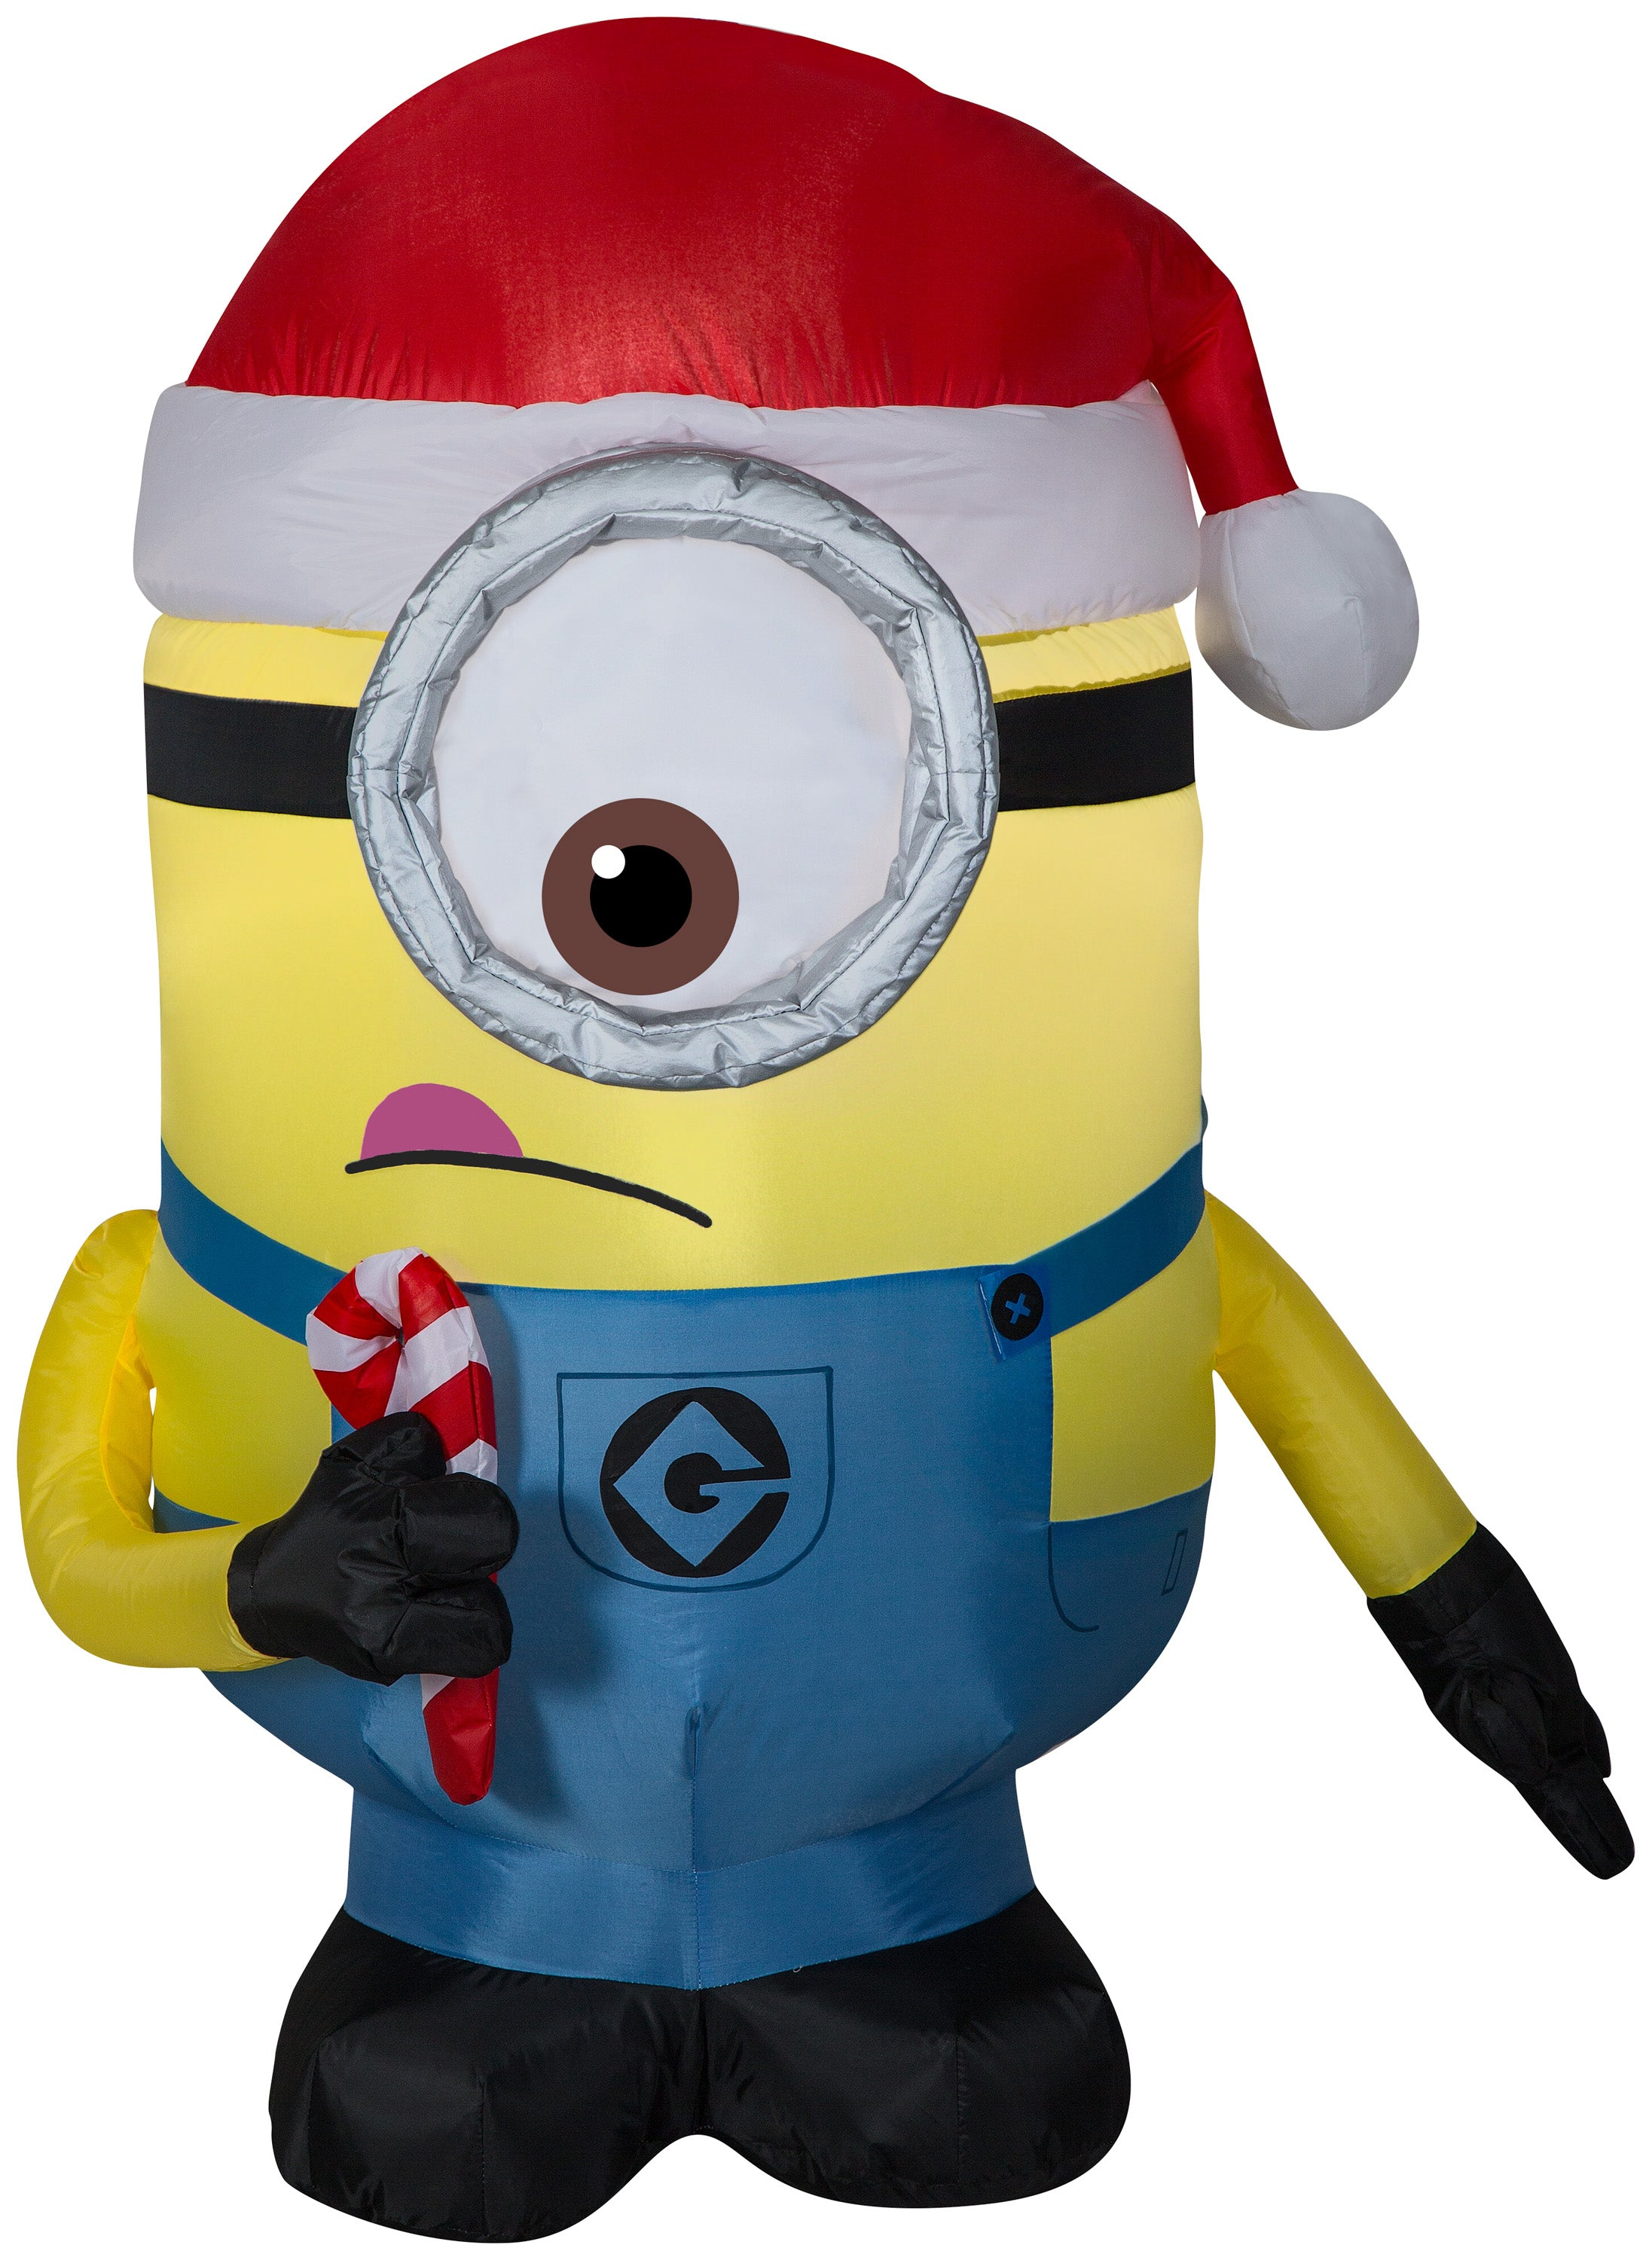 3.5' Airblown Carl w/ Tongue Sticking Out Universal Christmas Inflatable